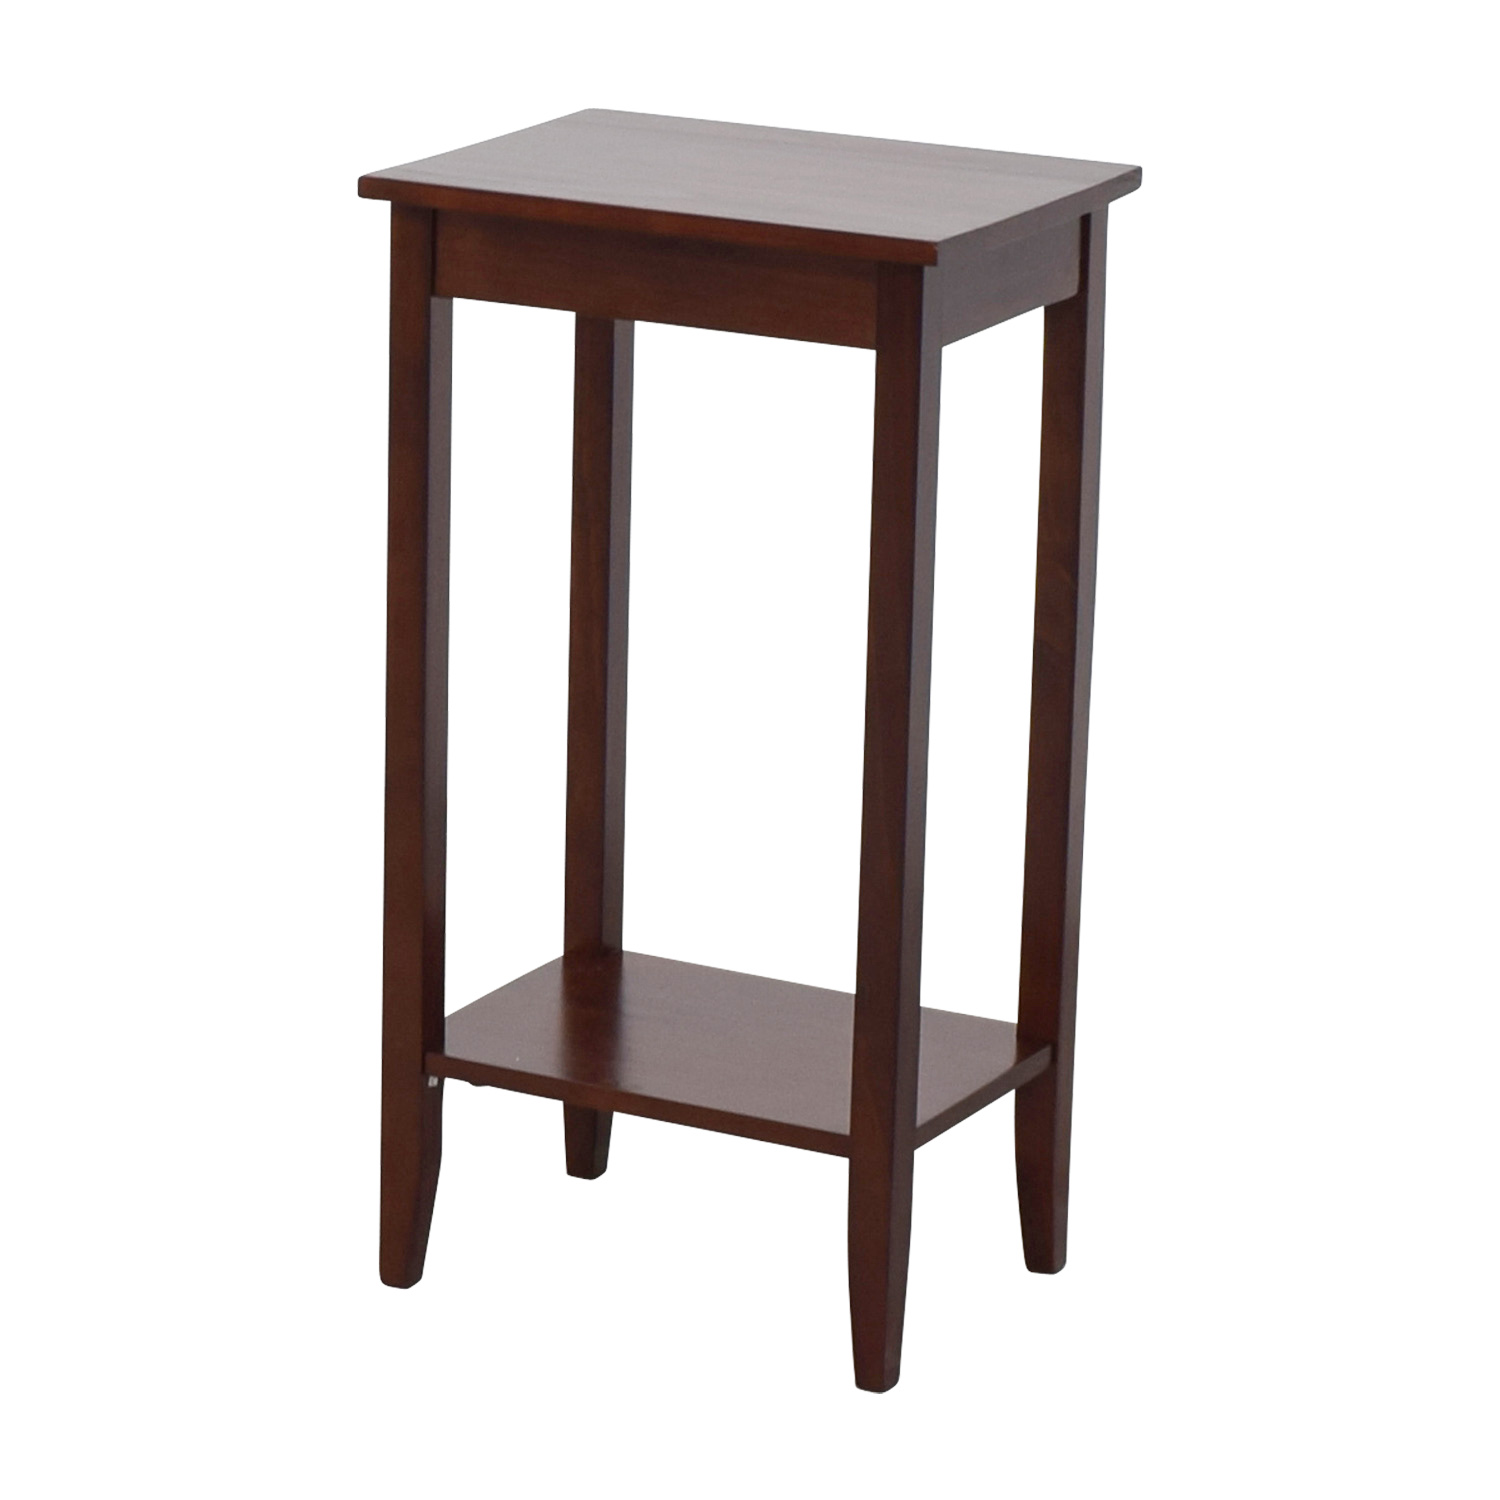 Merveilleux ... Tall Narrow Side Table Used ...